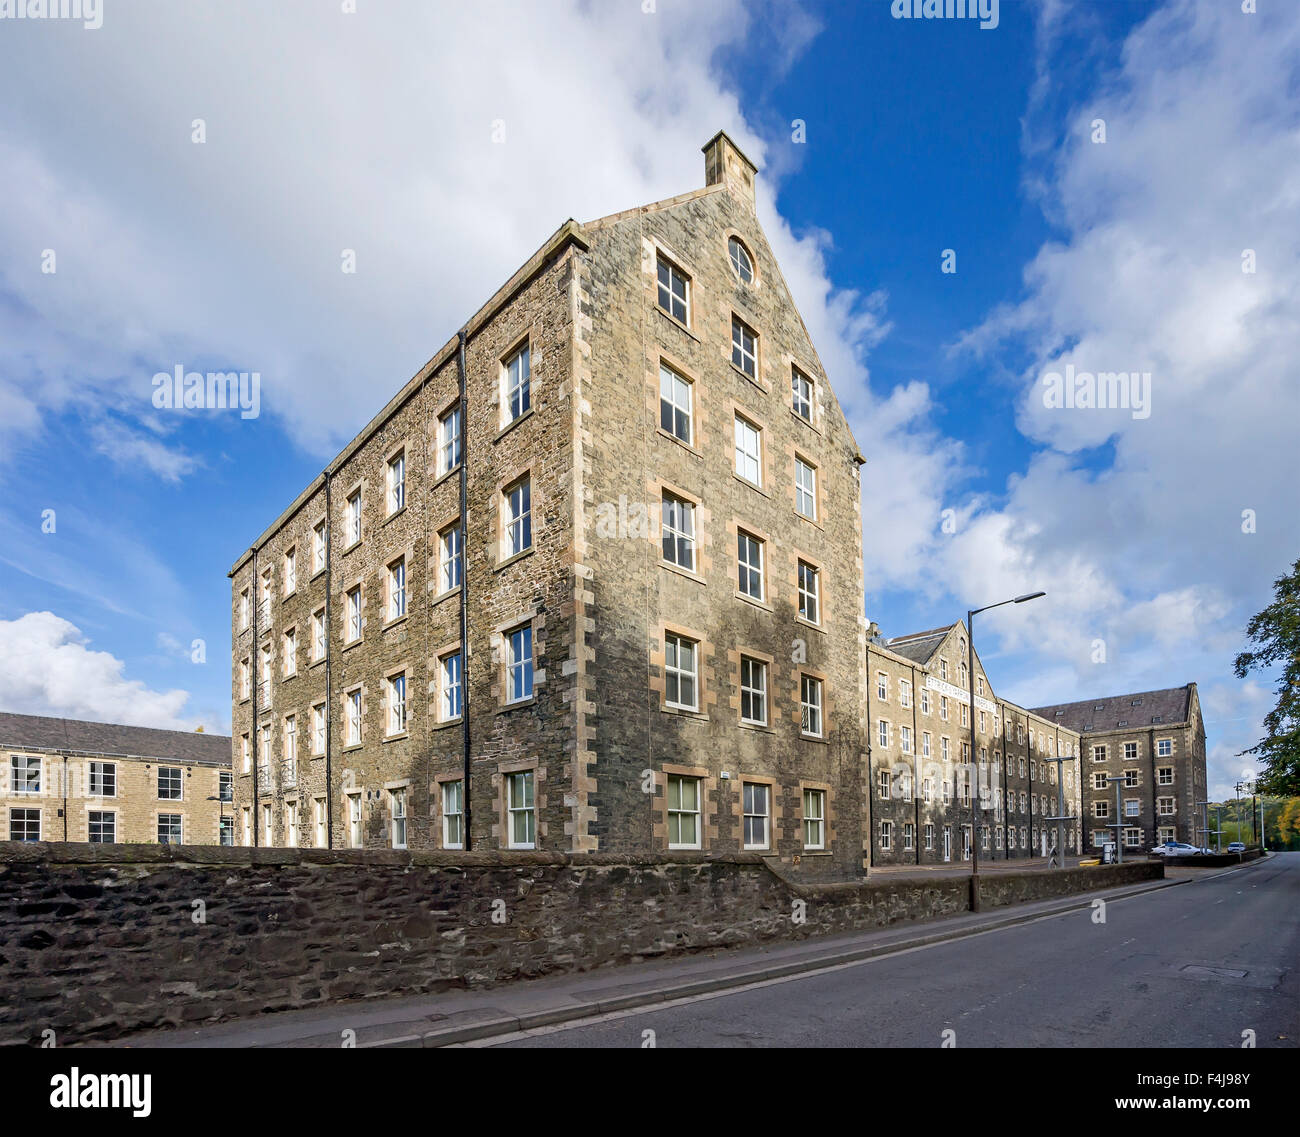 Ettrick & Yarrow Spinners Ltd. old factory In Selkirk Scottish Borders Scotland now Ettrick Riverside Business - Stock Image